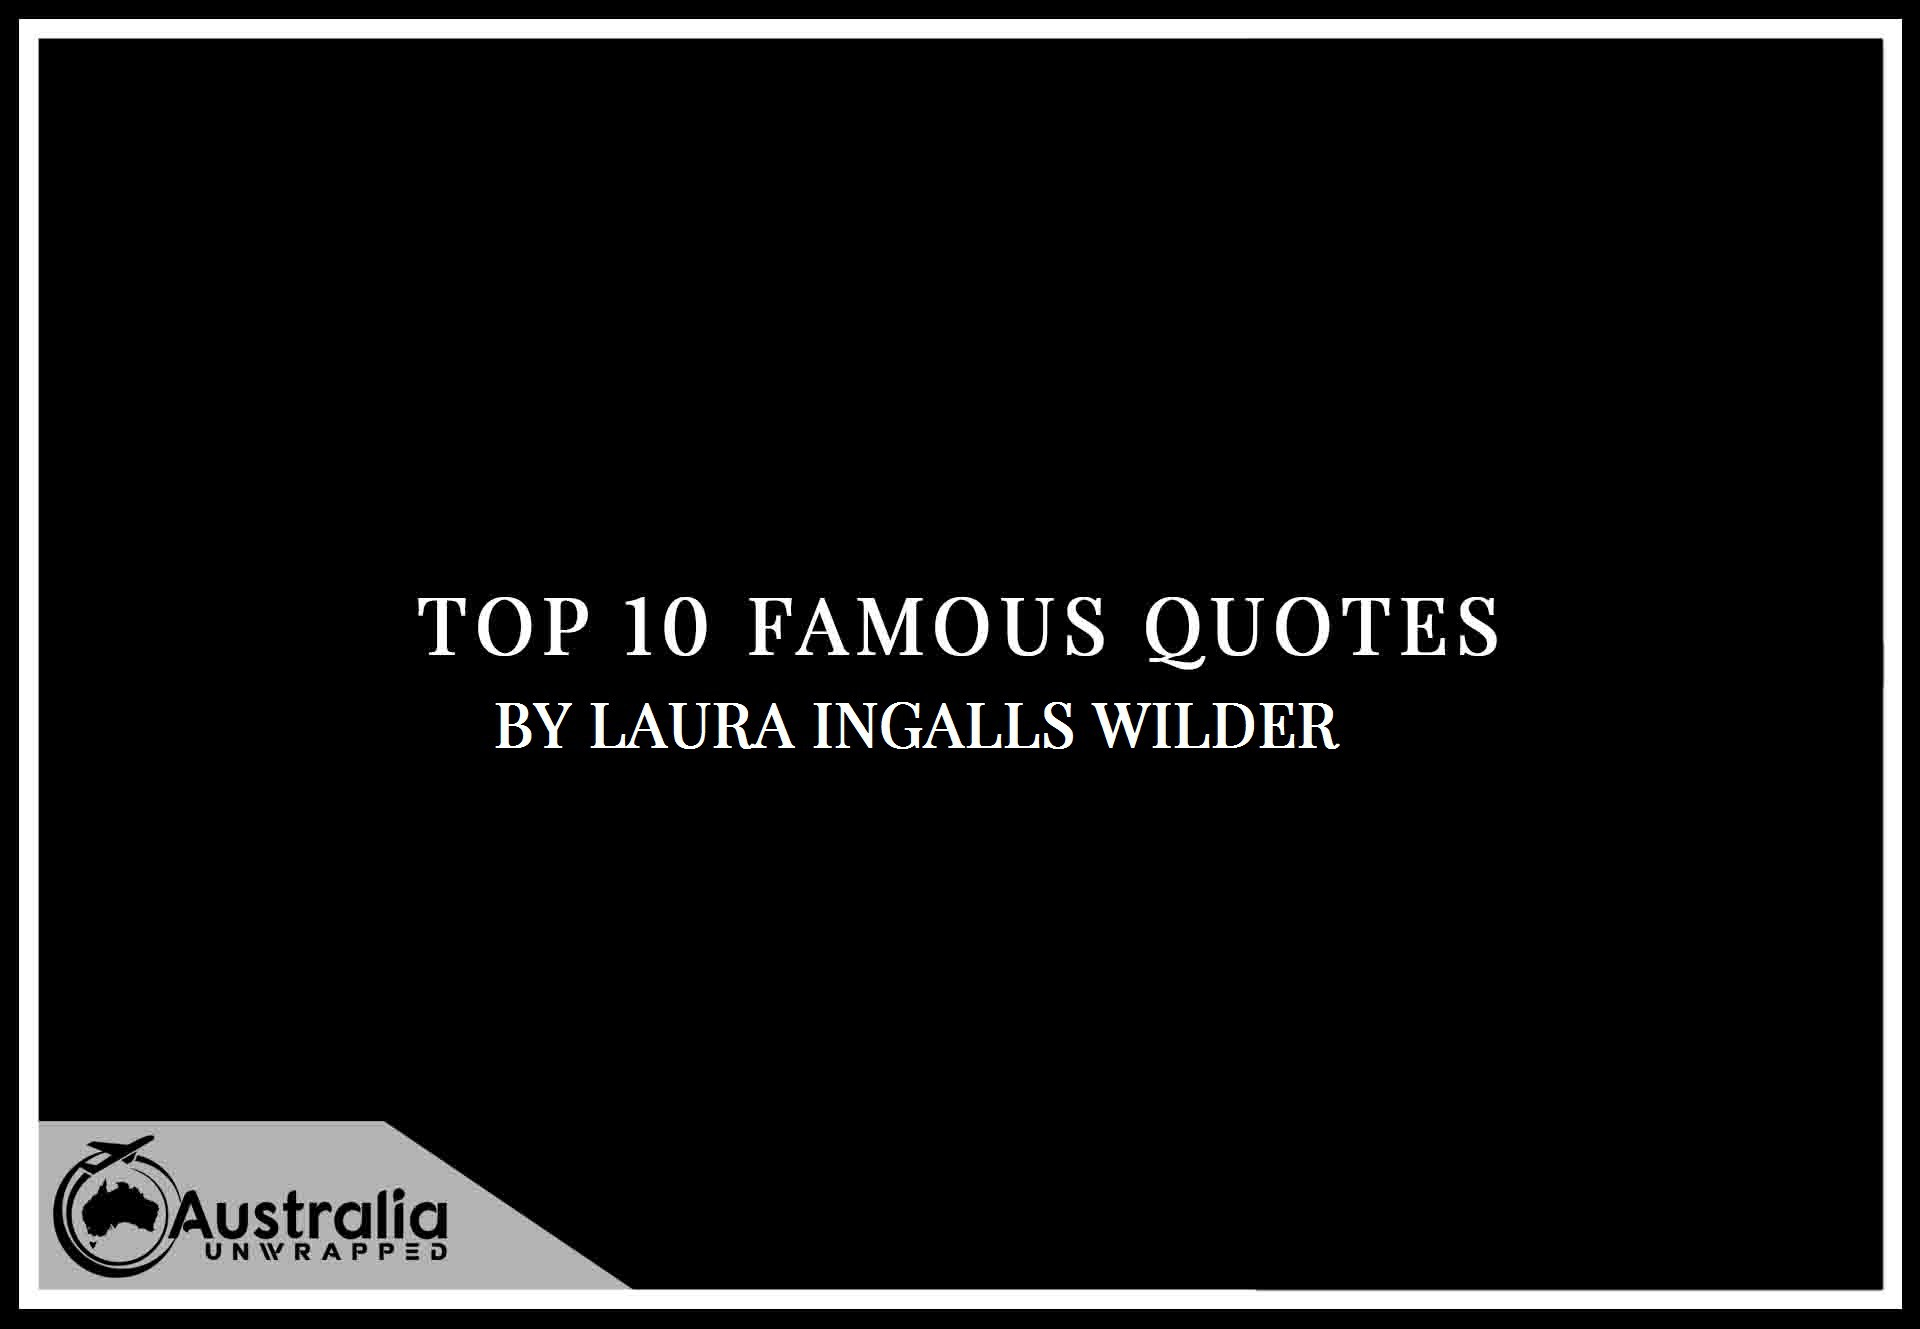 Laura Ingalls Wilder's Top 10 Popular and Famous Quotes